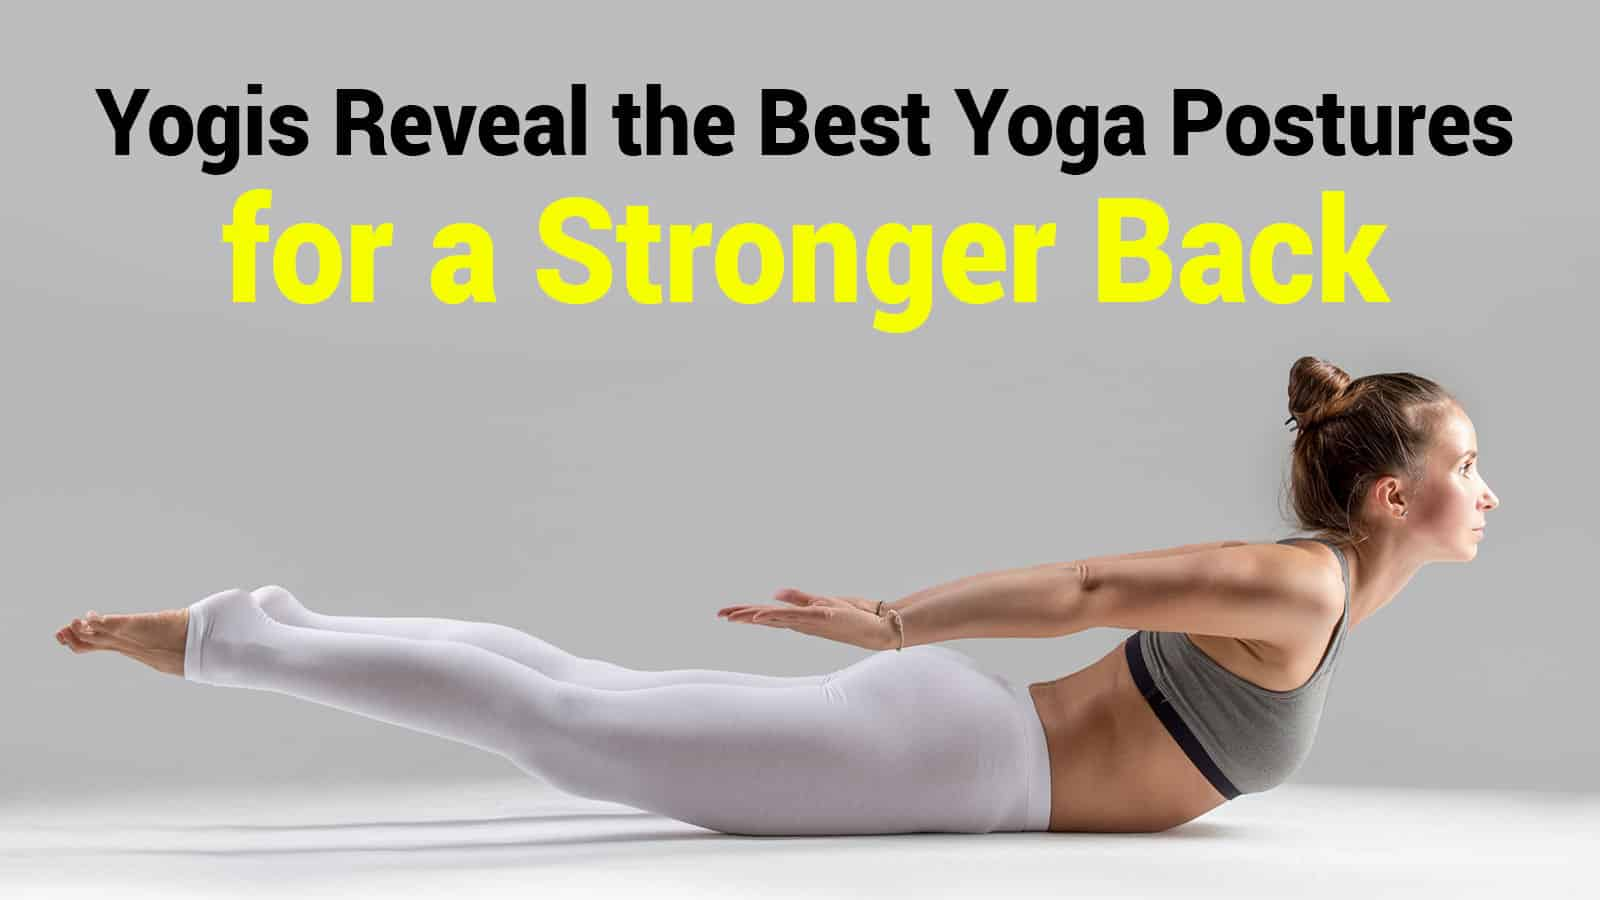 Yogis Reveal the Best Yoga Postures for a Stronger Back  36 Minute